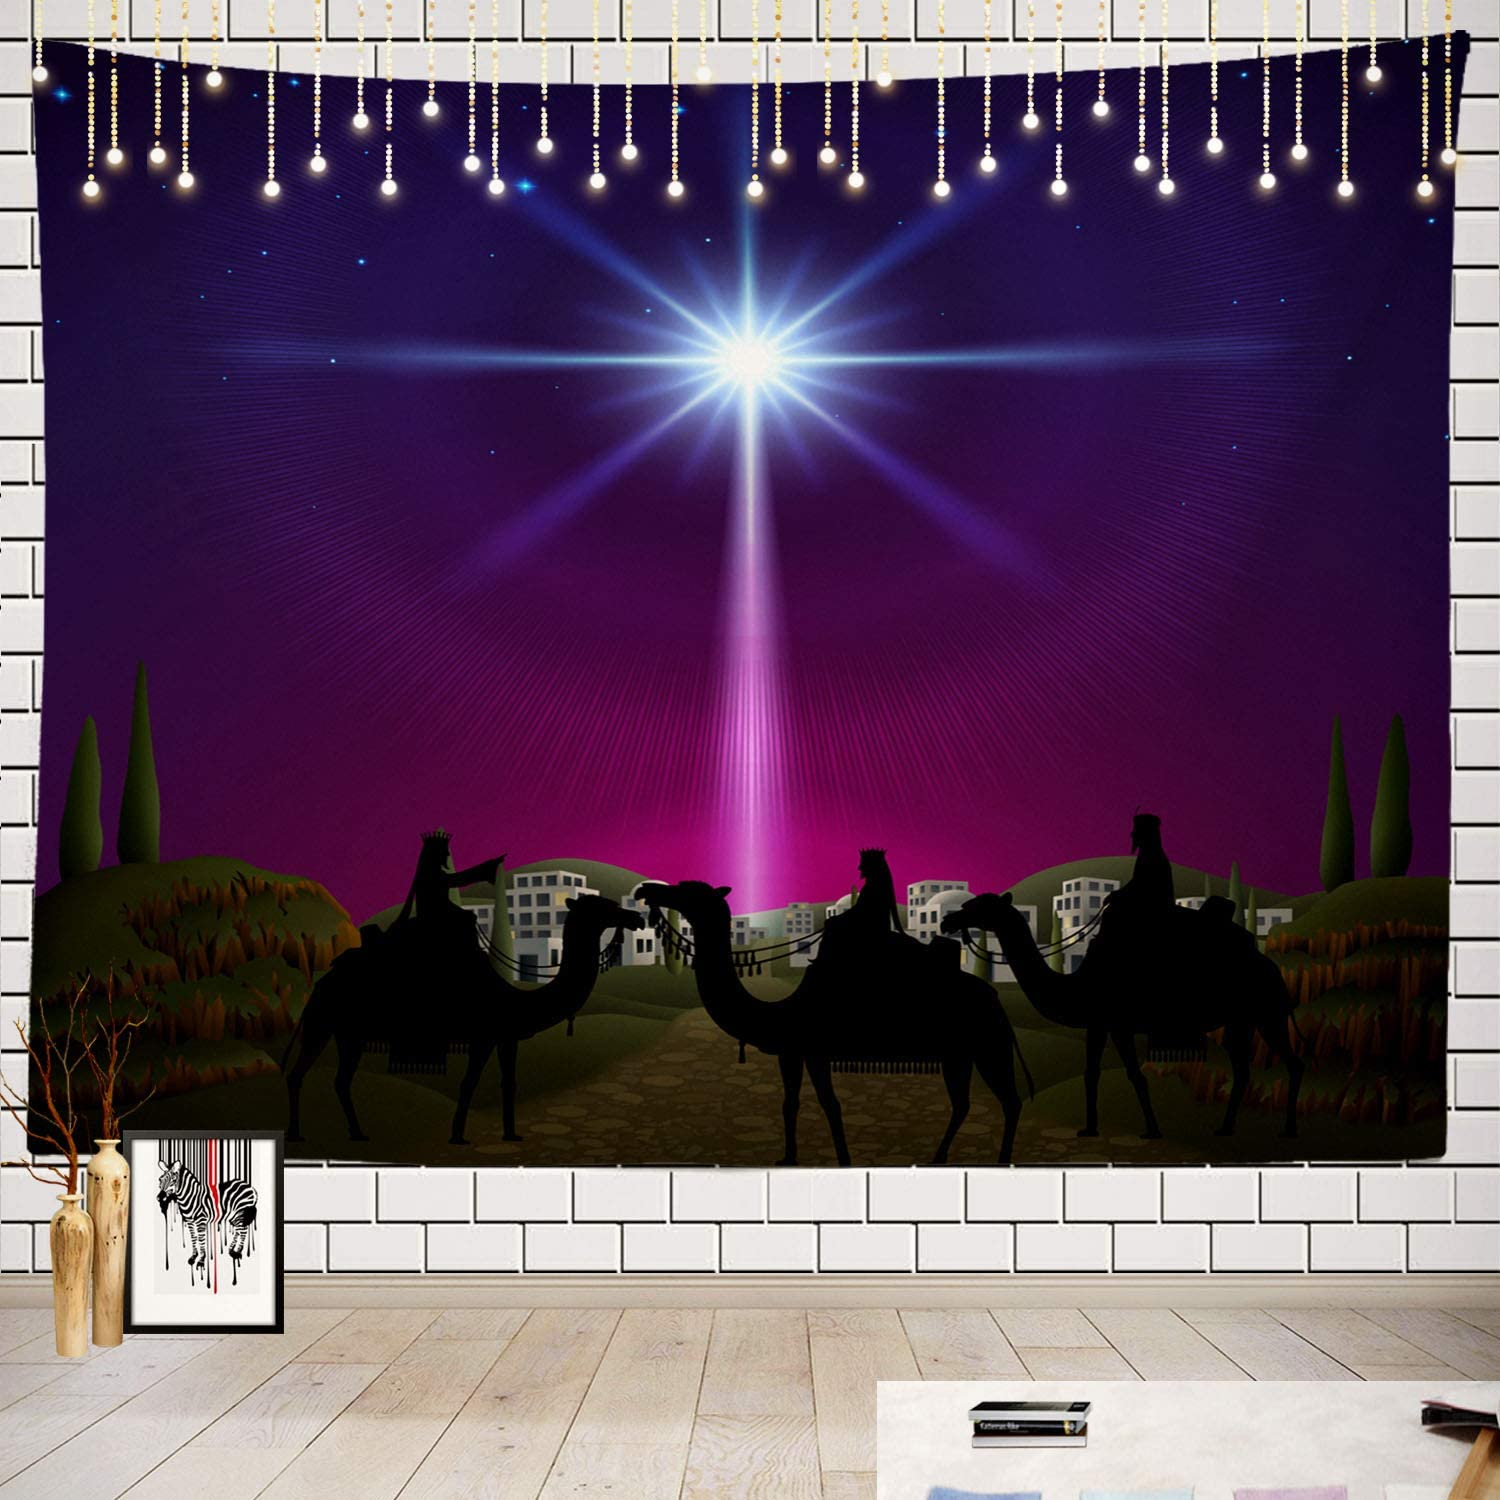 Batmerry Star Tapestry, Christmas Nativity Scene Bethlehem Star Wise Men Bible Picnic Mat Beach Towel Wall Art Decoration for Bedroom Living Room Dorm, 51.2 x 59.1 Inches, Camel Dusk